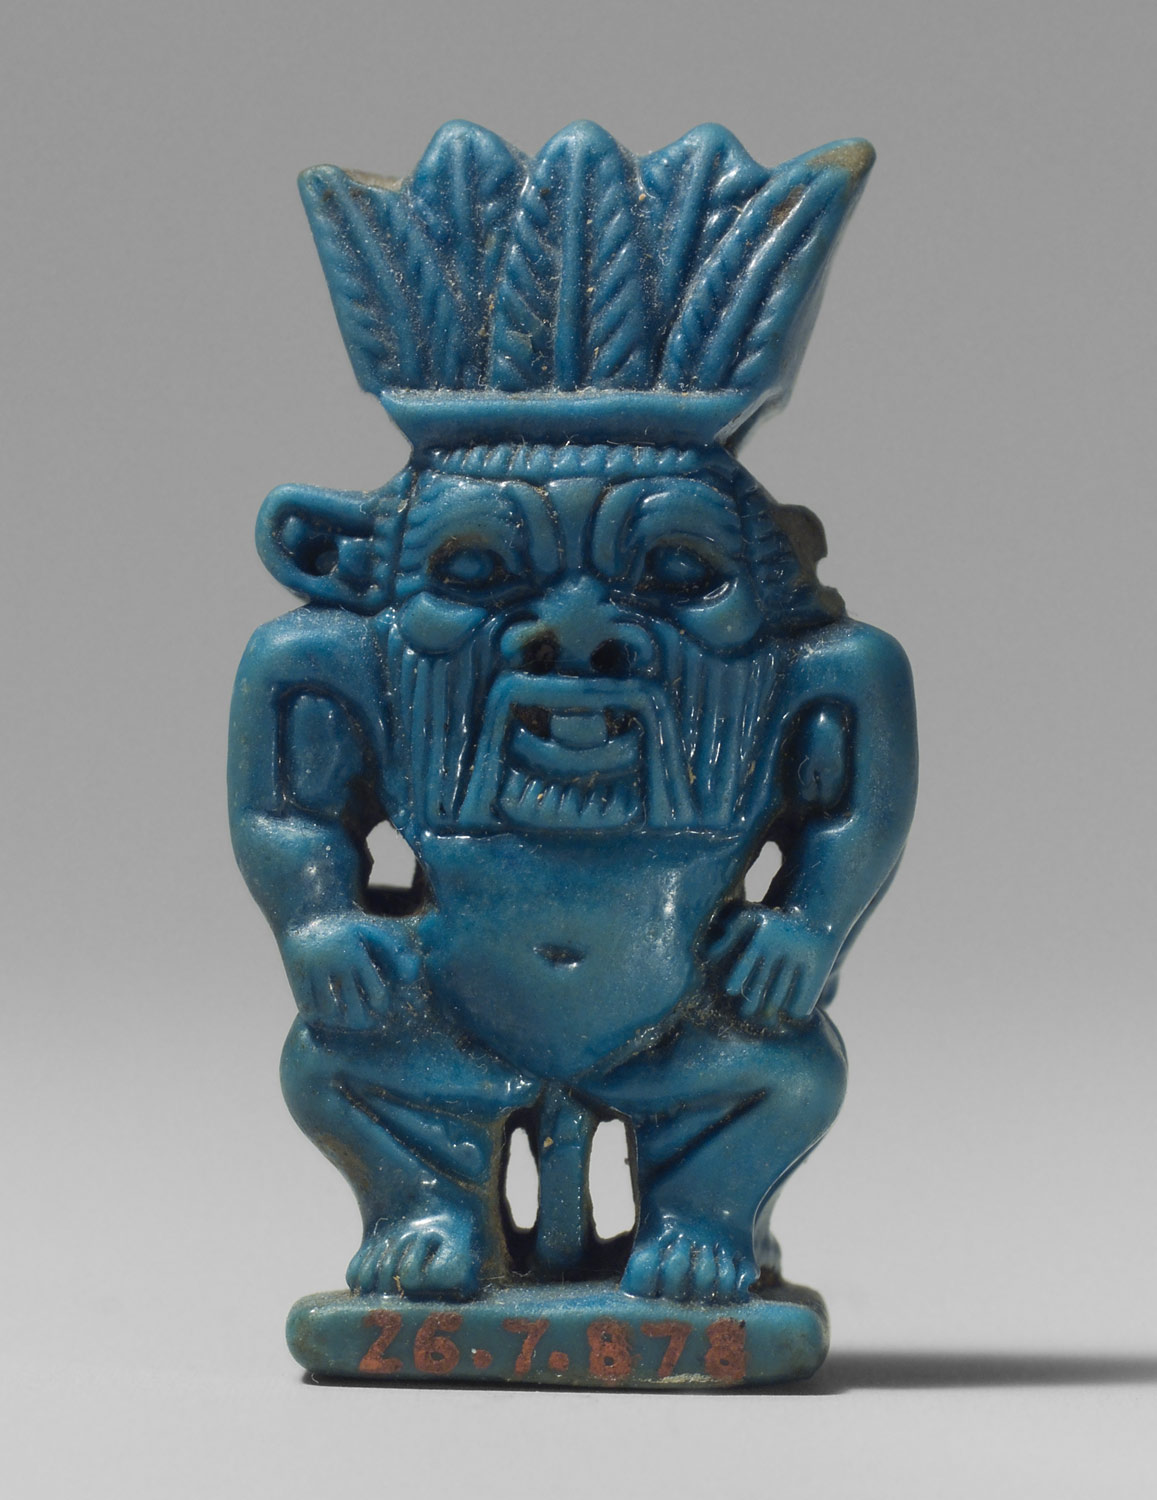 Amulet of the God Bes  Work of Art  Heilbrunn Timeline of Art History  The Metropolitan